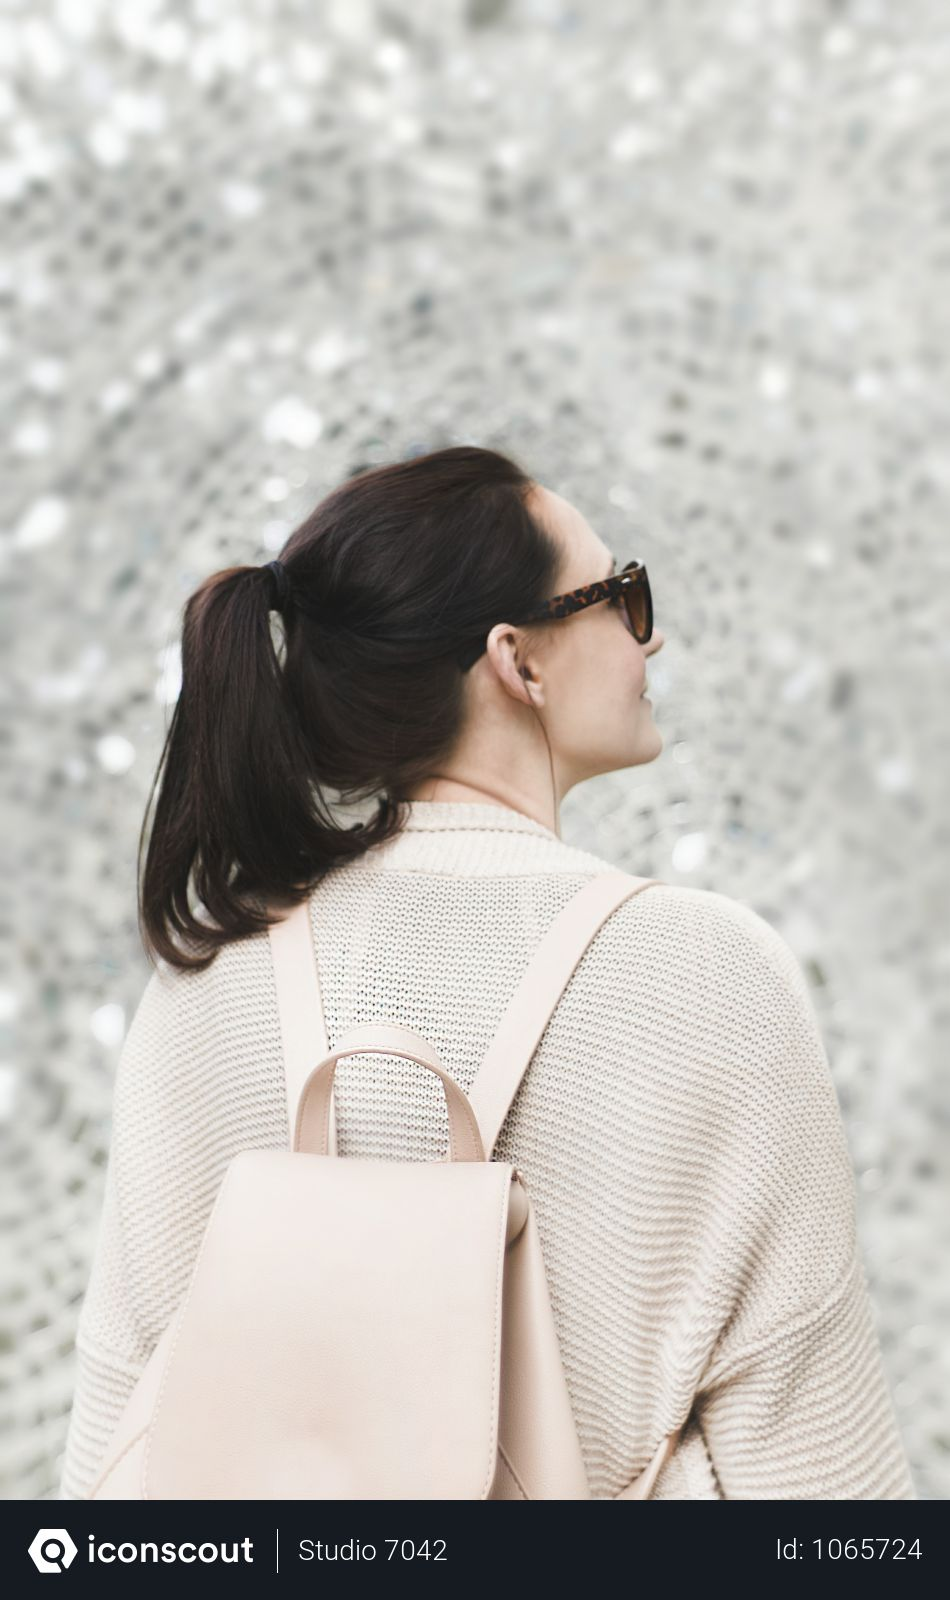 Free Woman Wearing White Sweatshirt And Backpack Photo Download In Png Jpg Format